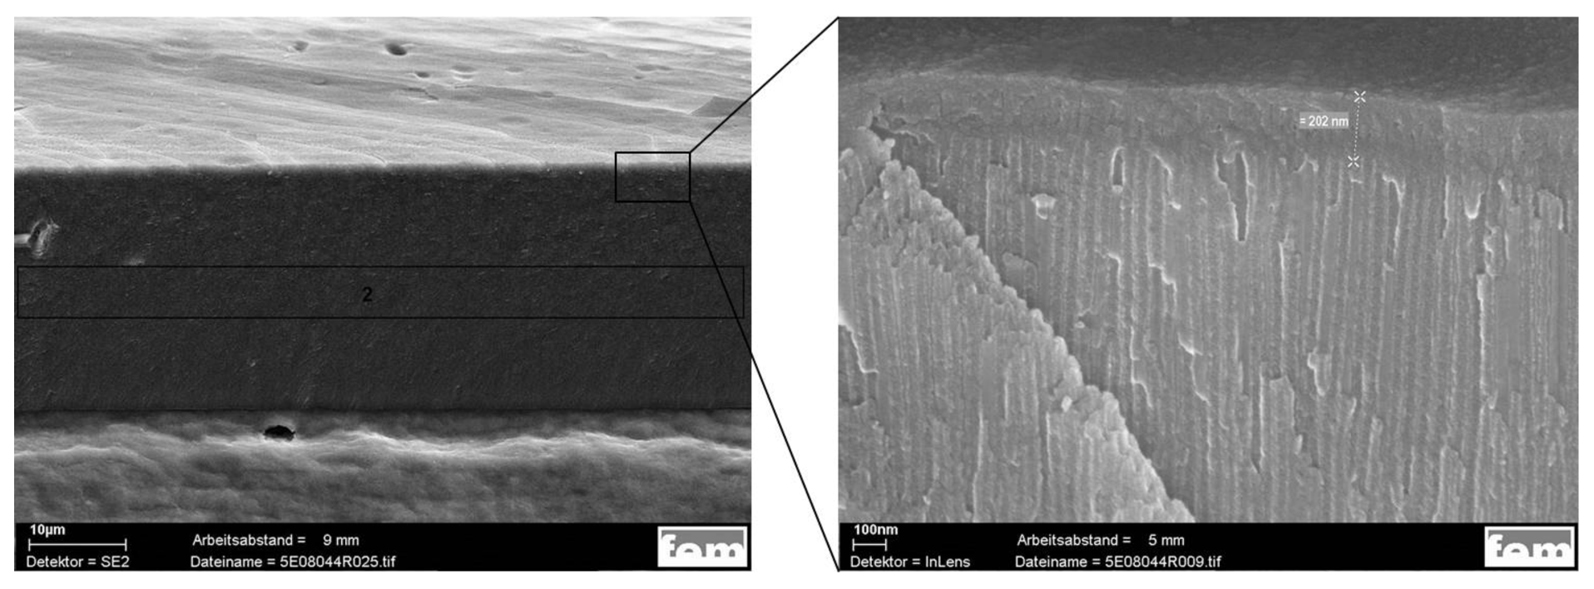 Fig. 6: Left: Fraction of the Ni-free cold sealed anodising layer; Right: Magnification of the upper area of the anodising layer showing a dense appearing and completely sealed surface